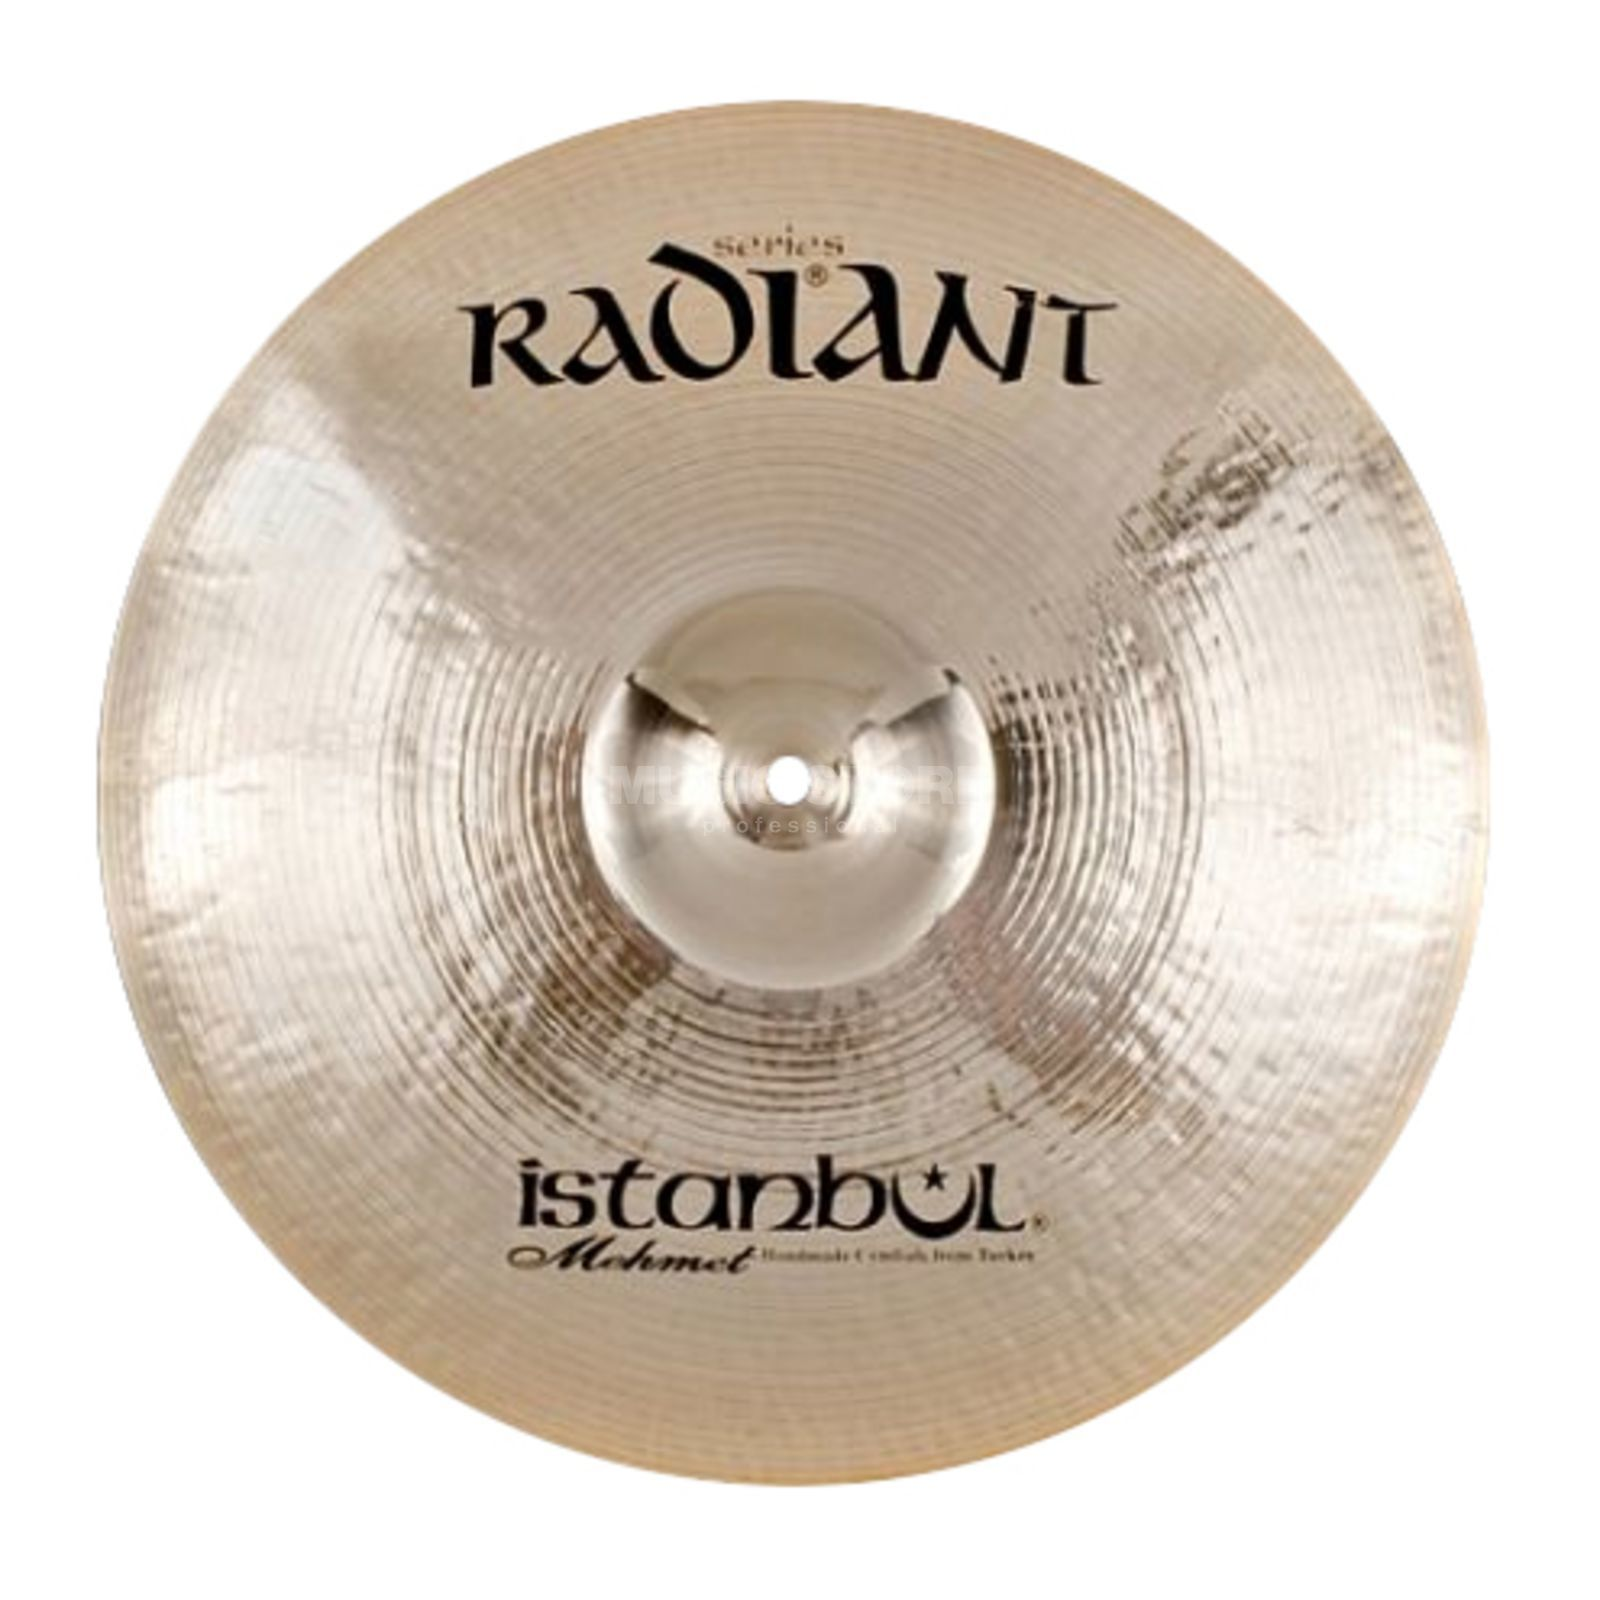 "Istanbul Radiant Sweet Thin Crash 17"", R-CSW18 Produktbillede"